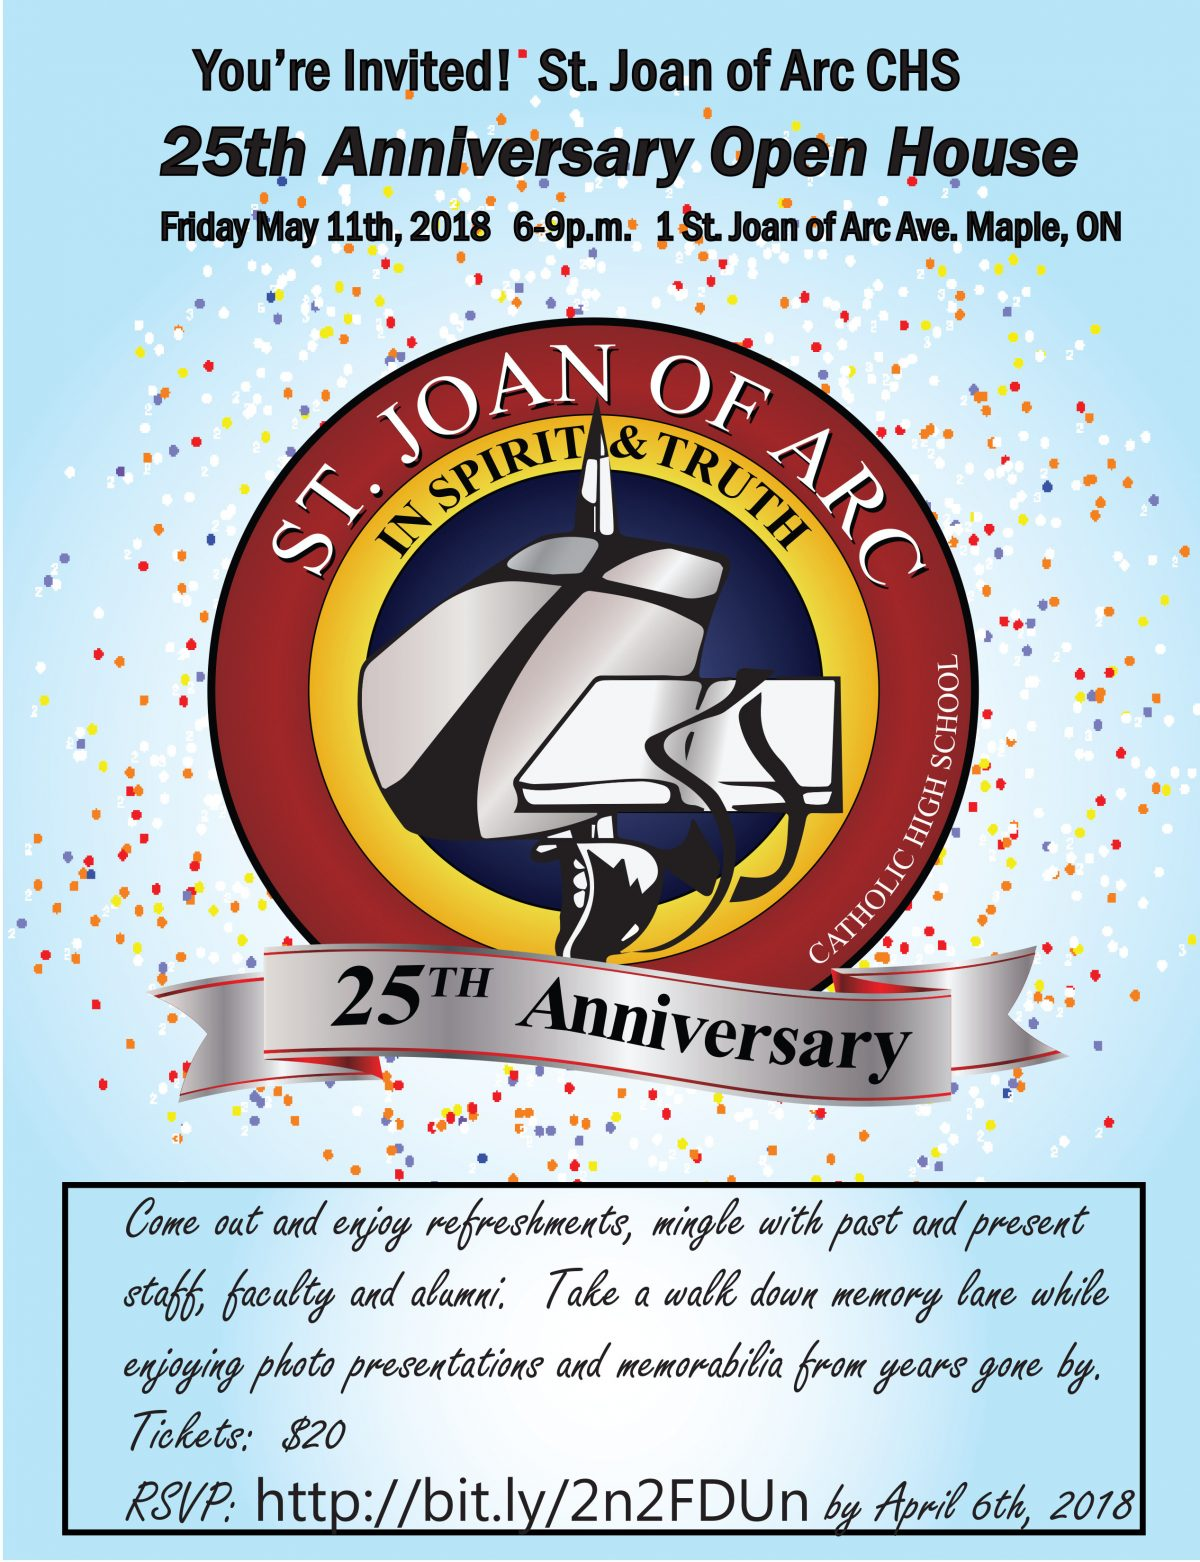 St. Joan of Arc 25th Anniversary Open House